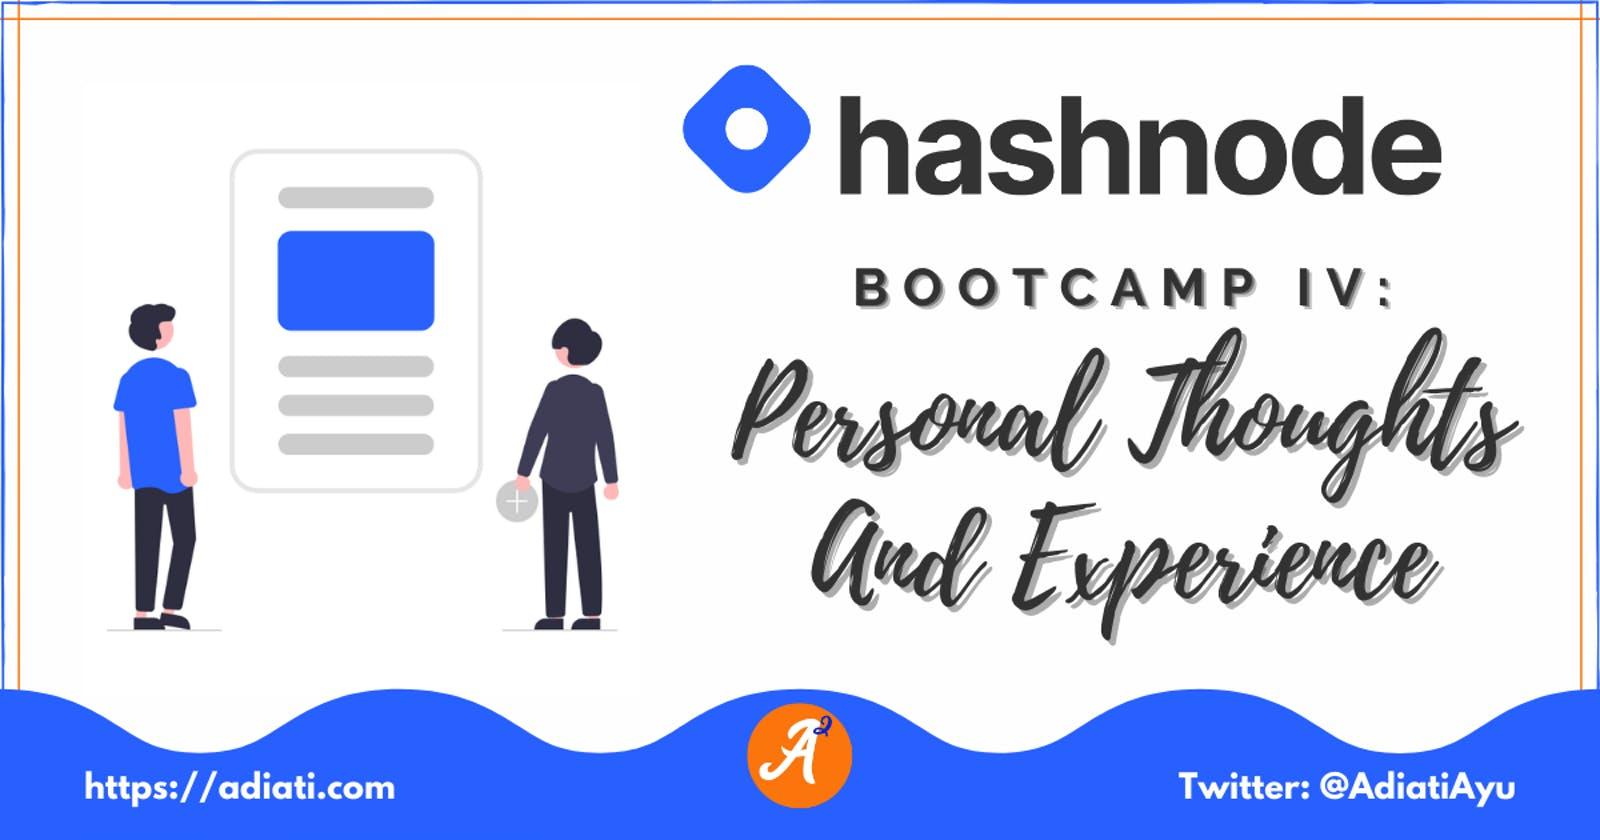 Hashnode Bootcamp IV: Personal Thoughts And Experience